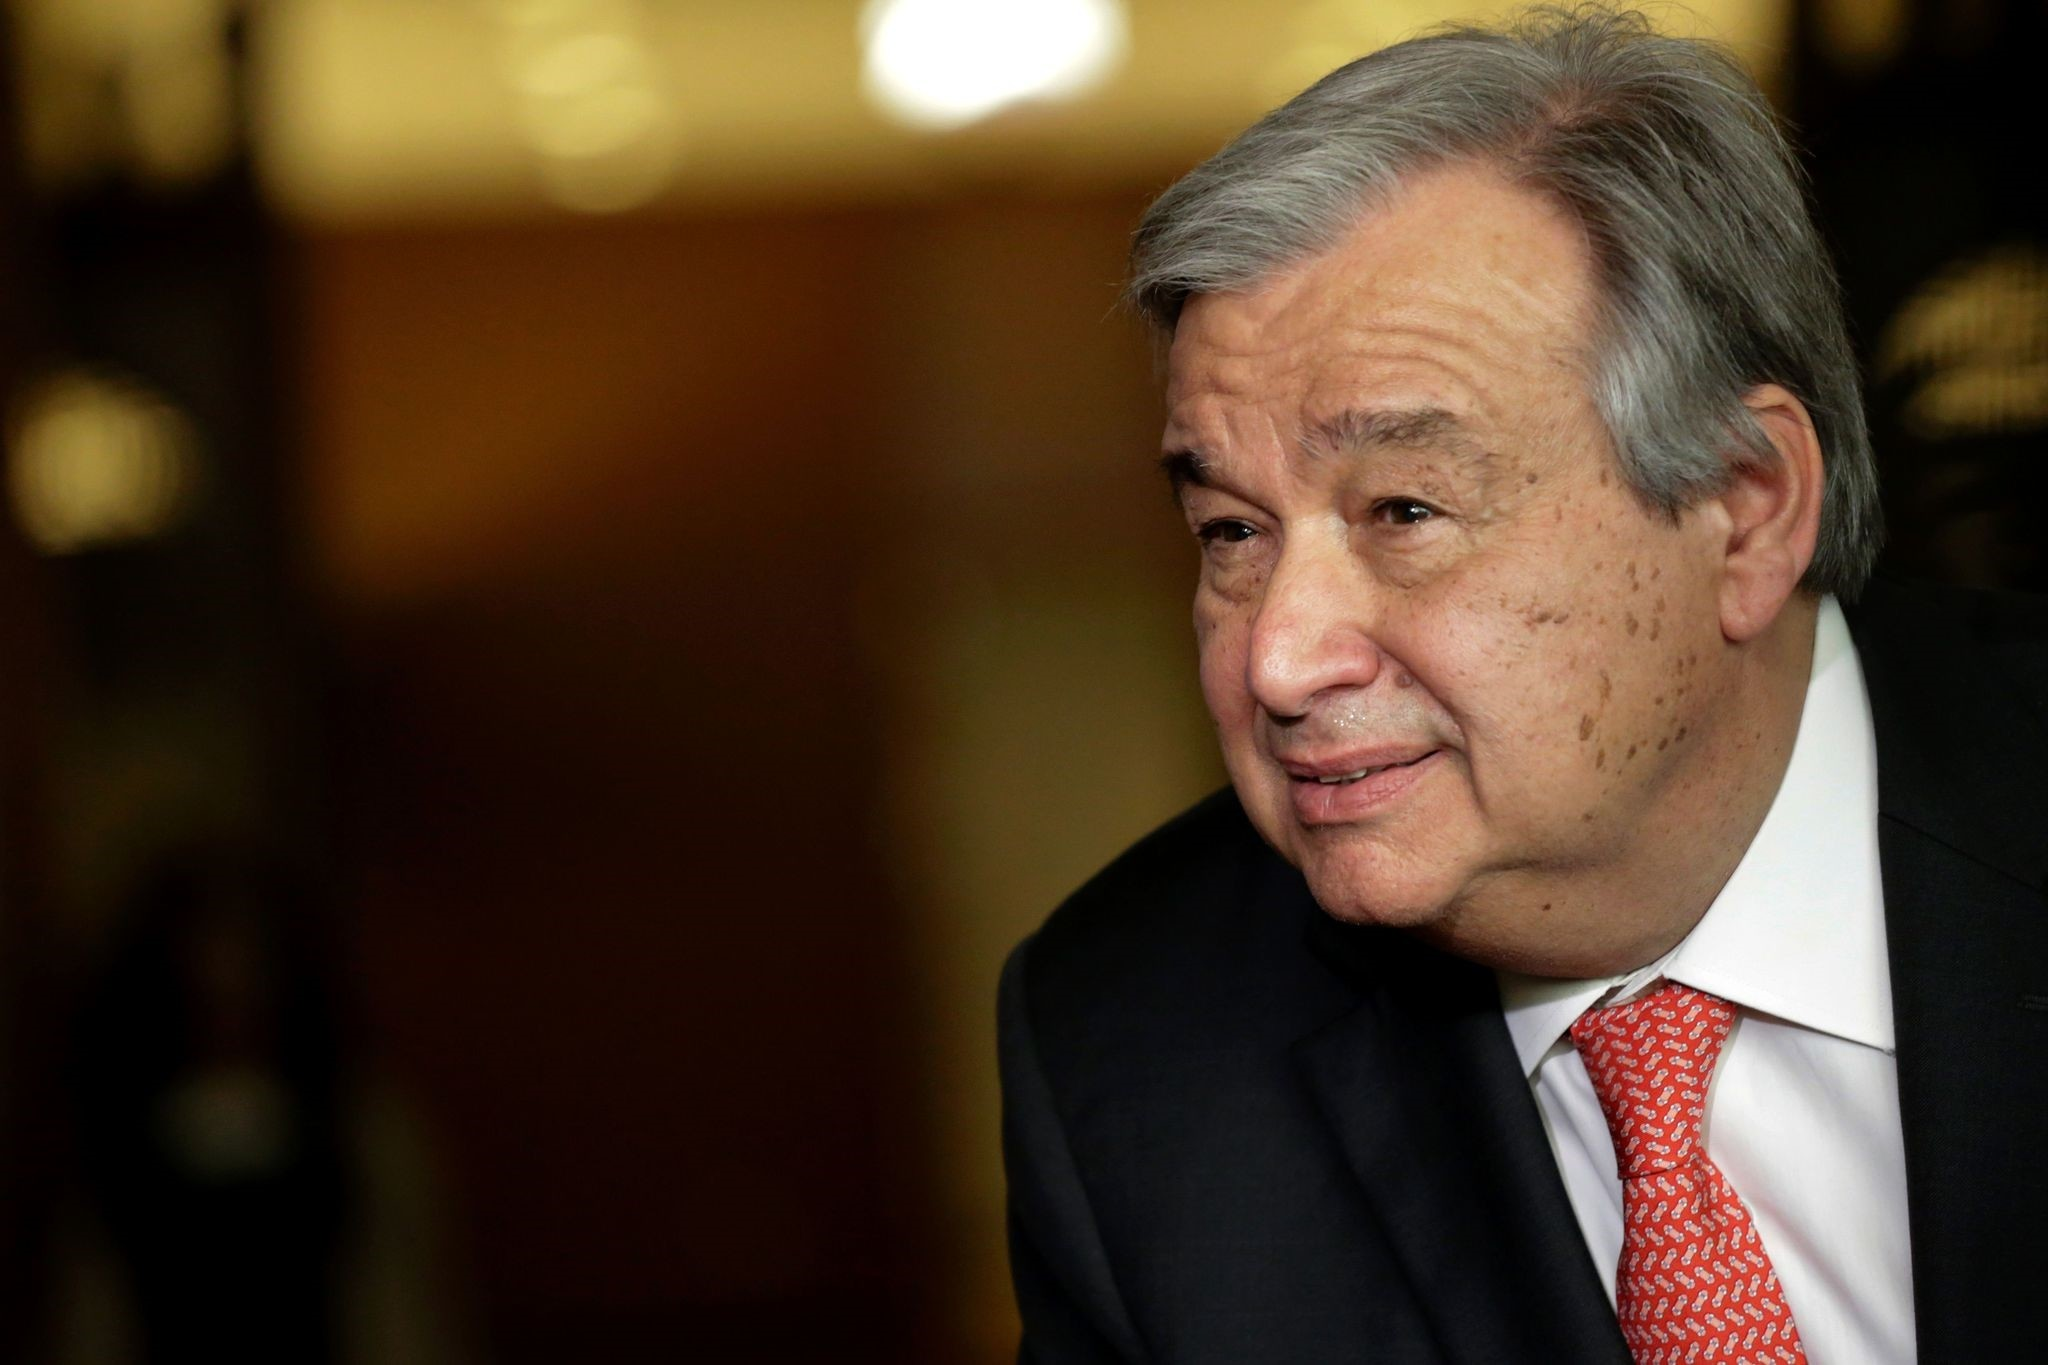 This file photo taken on April 12, 2016 shows Antonio Guterres speaking to reporters on the selection of the next UN Secretary-General at the UN headquarters in New York. (AFP Photo)